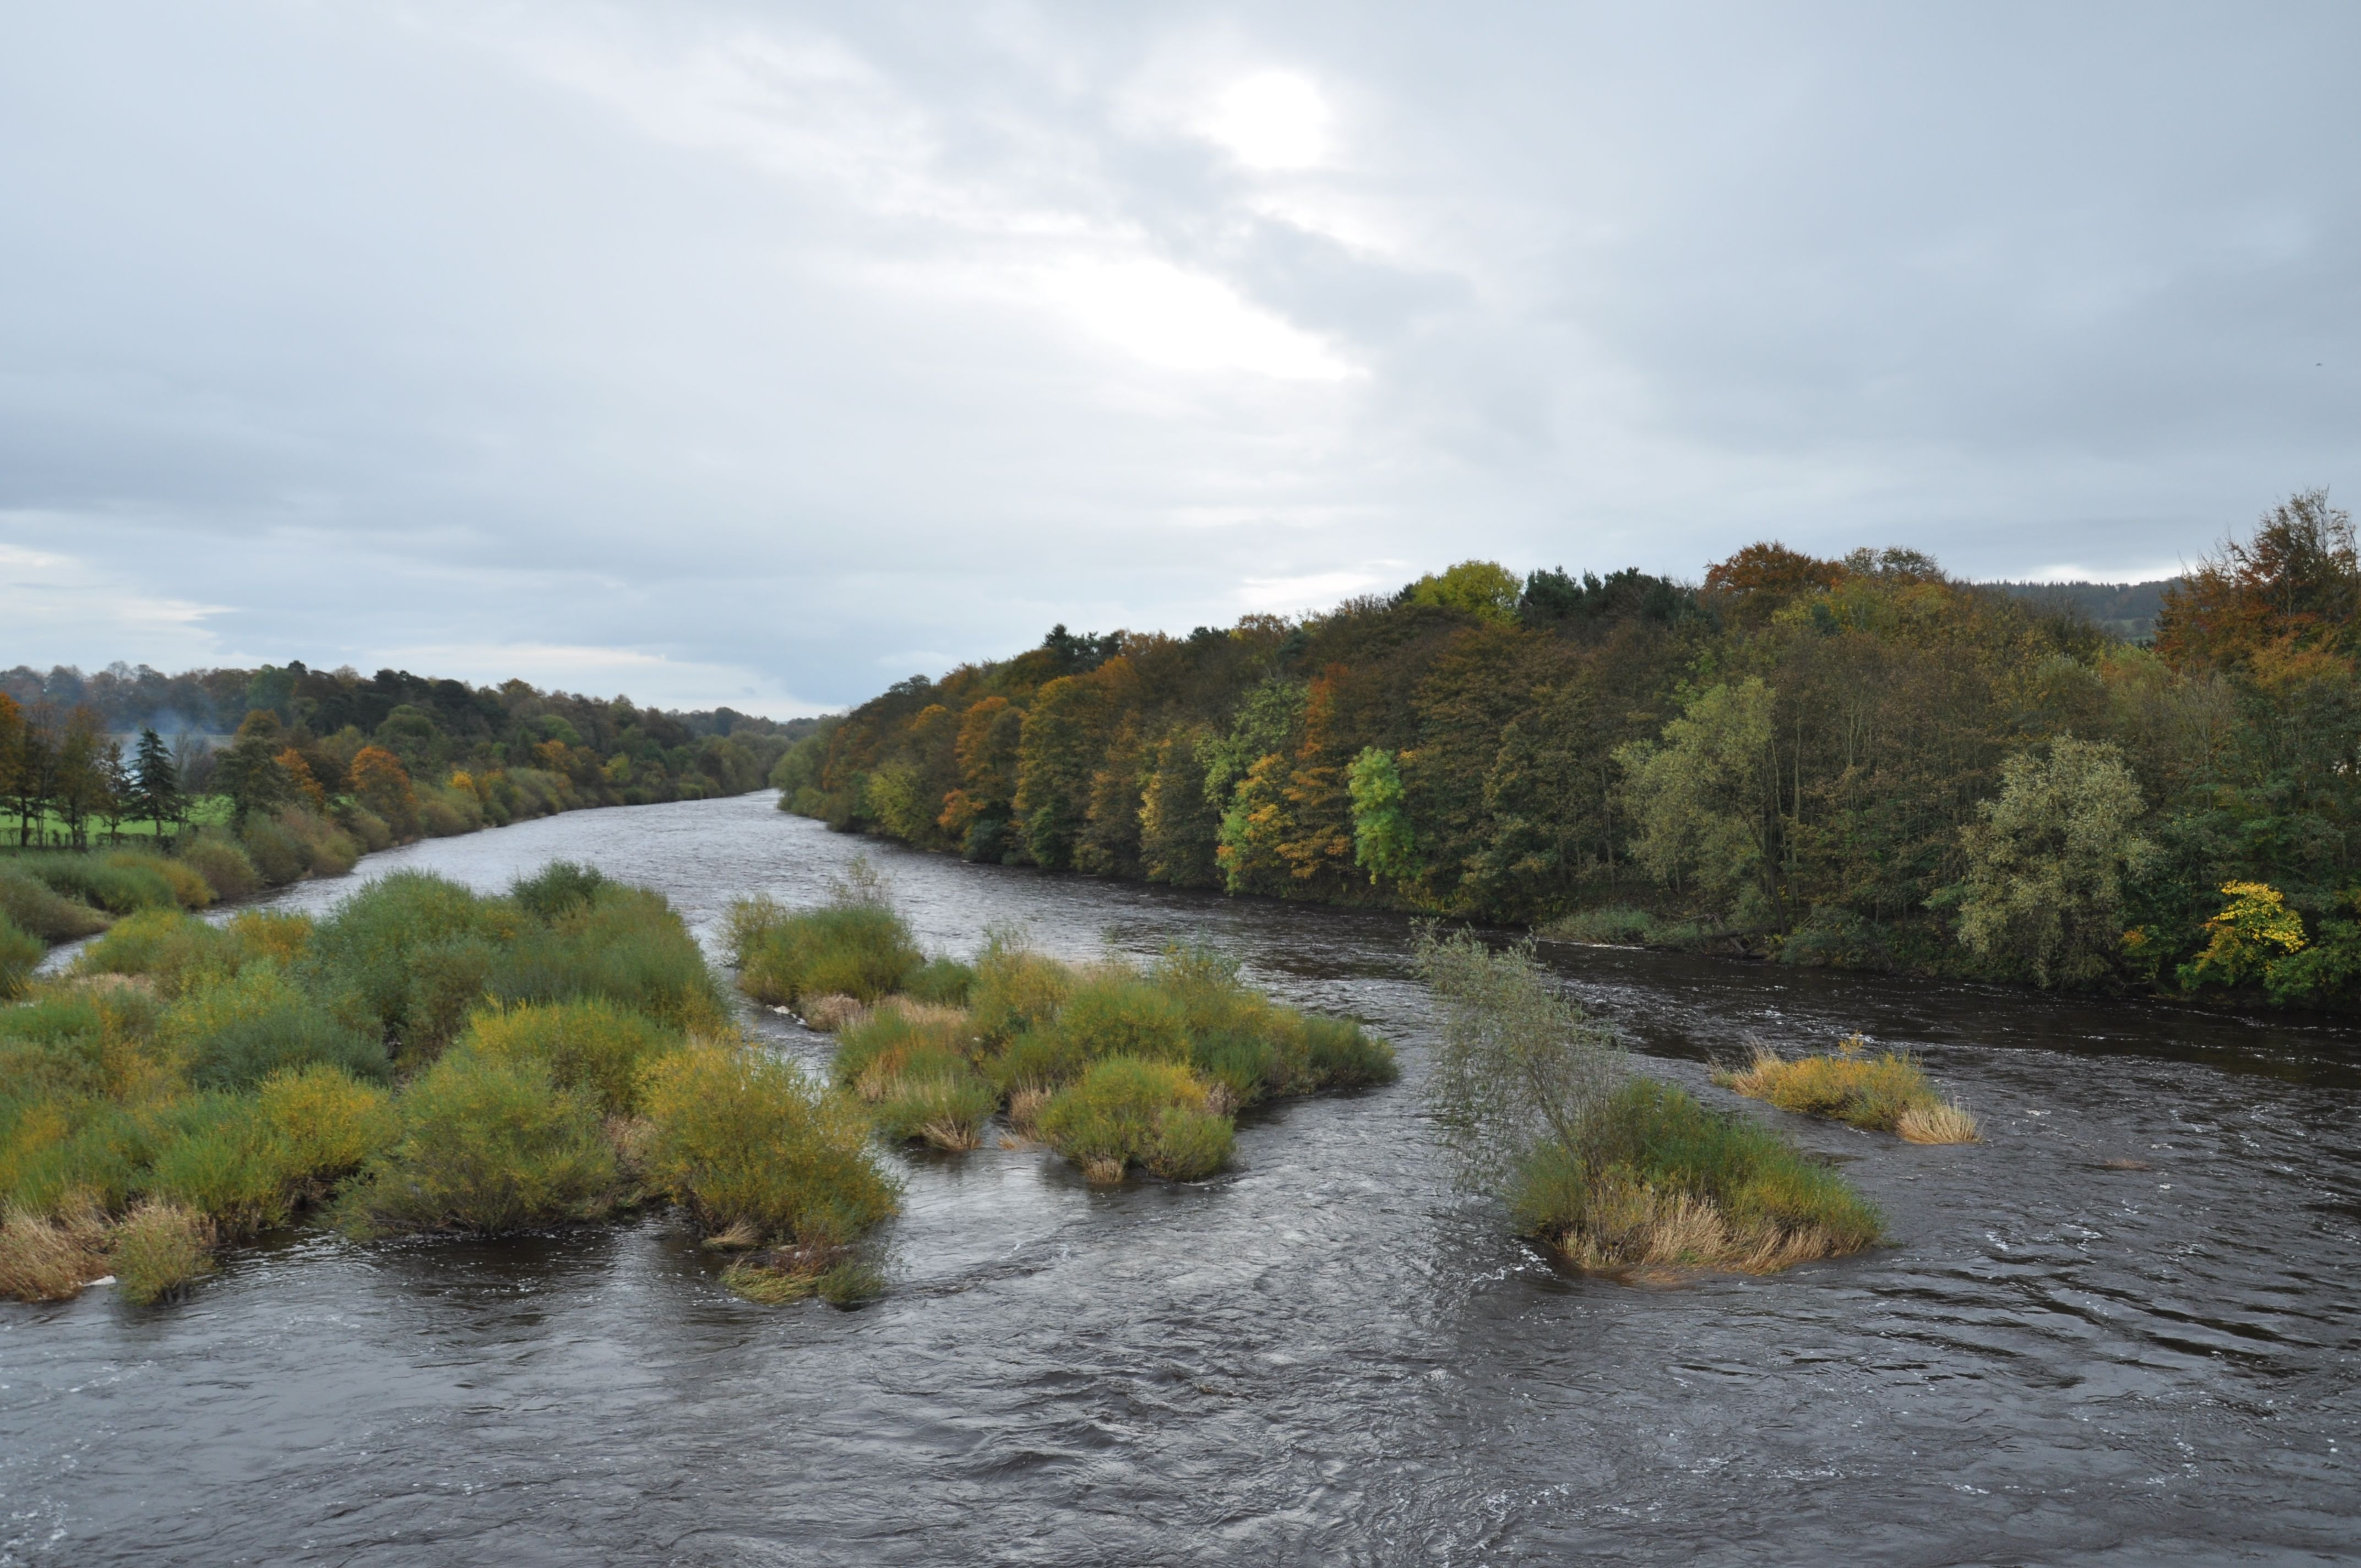 River Tyne at Corbridge (With images) | River, Outdoor ... on Kingdom Outdoor Living id=47316